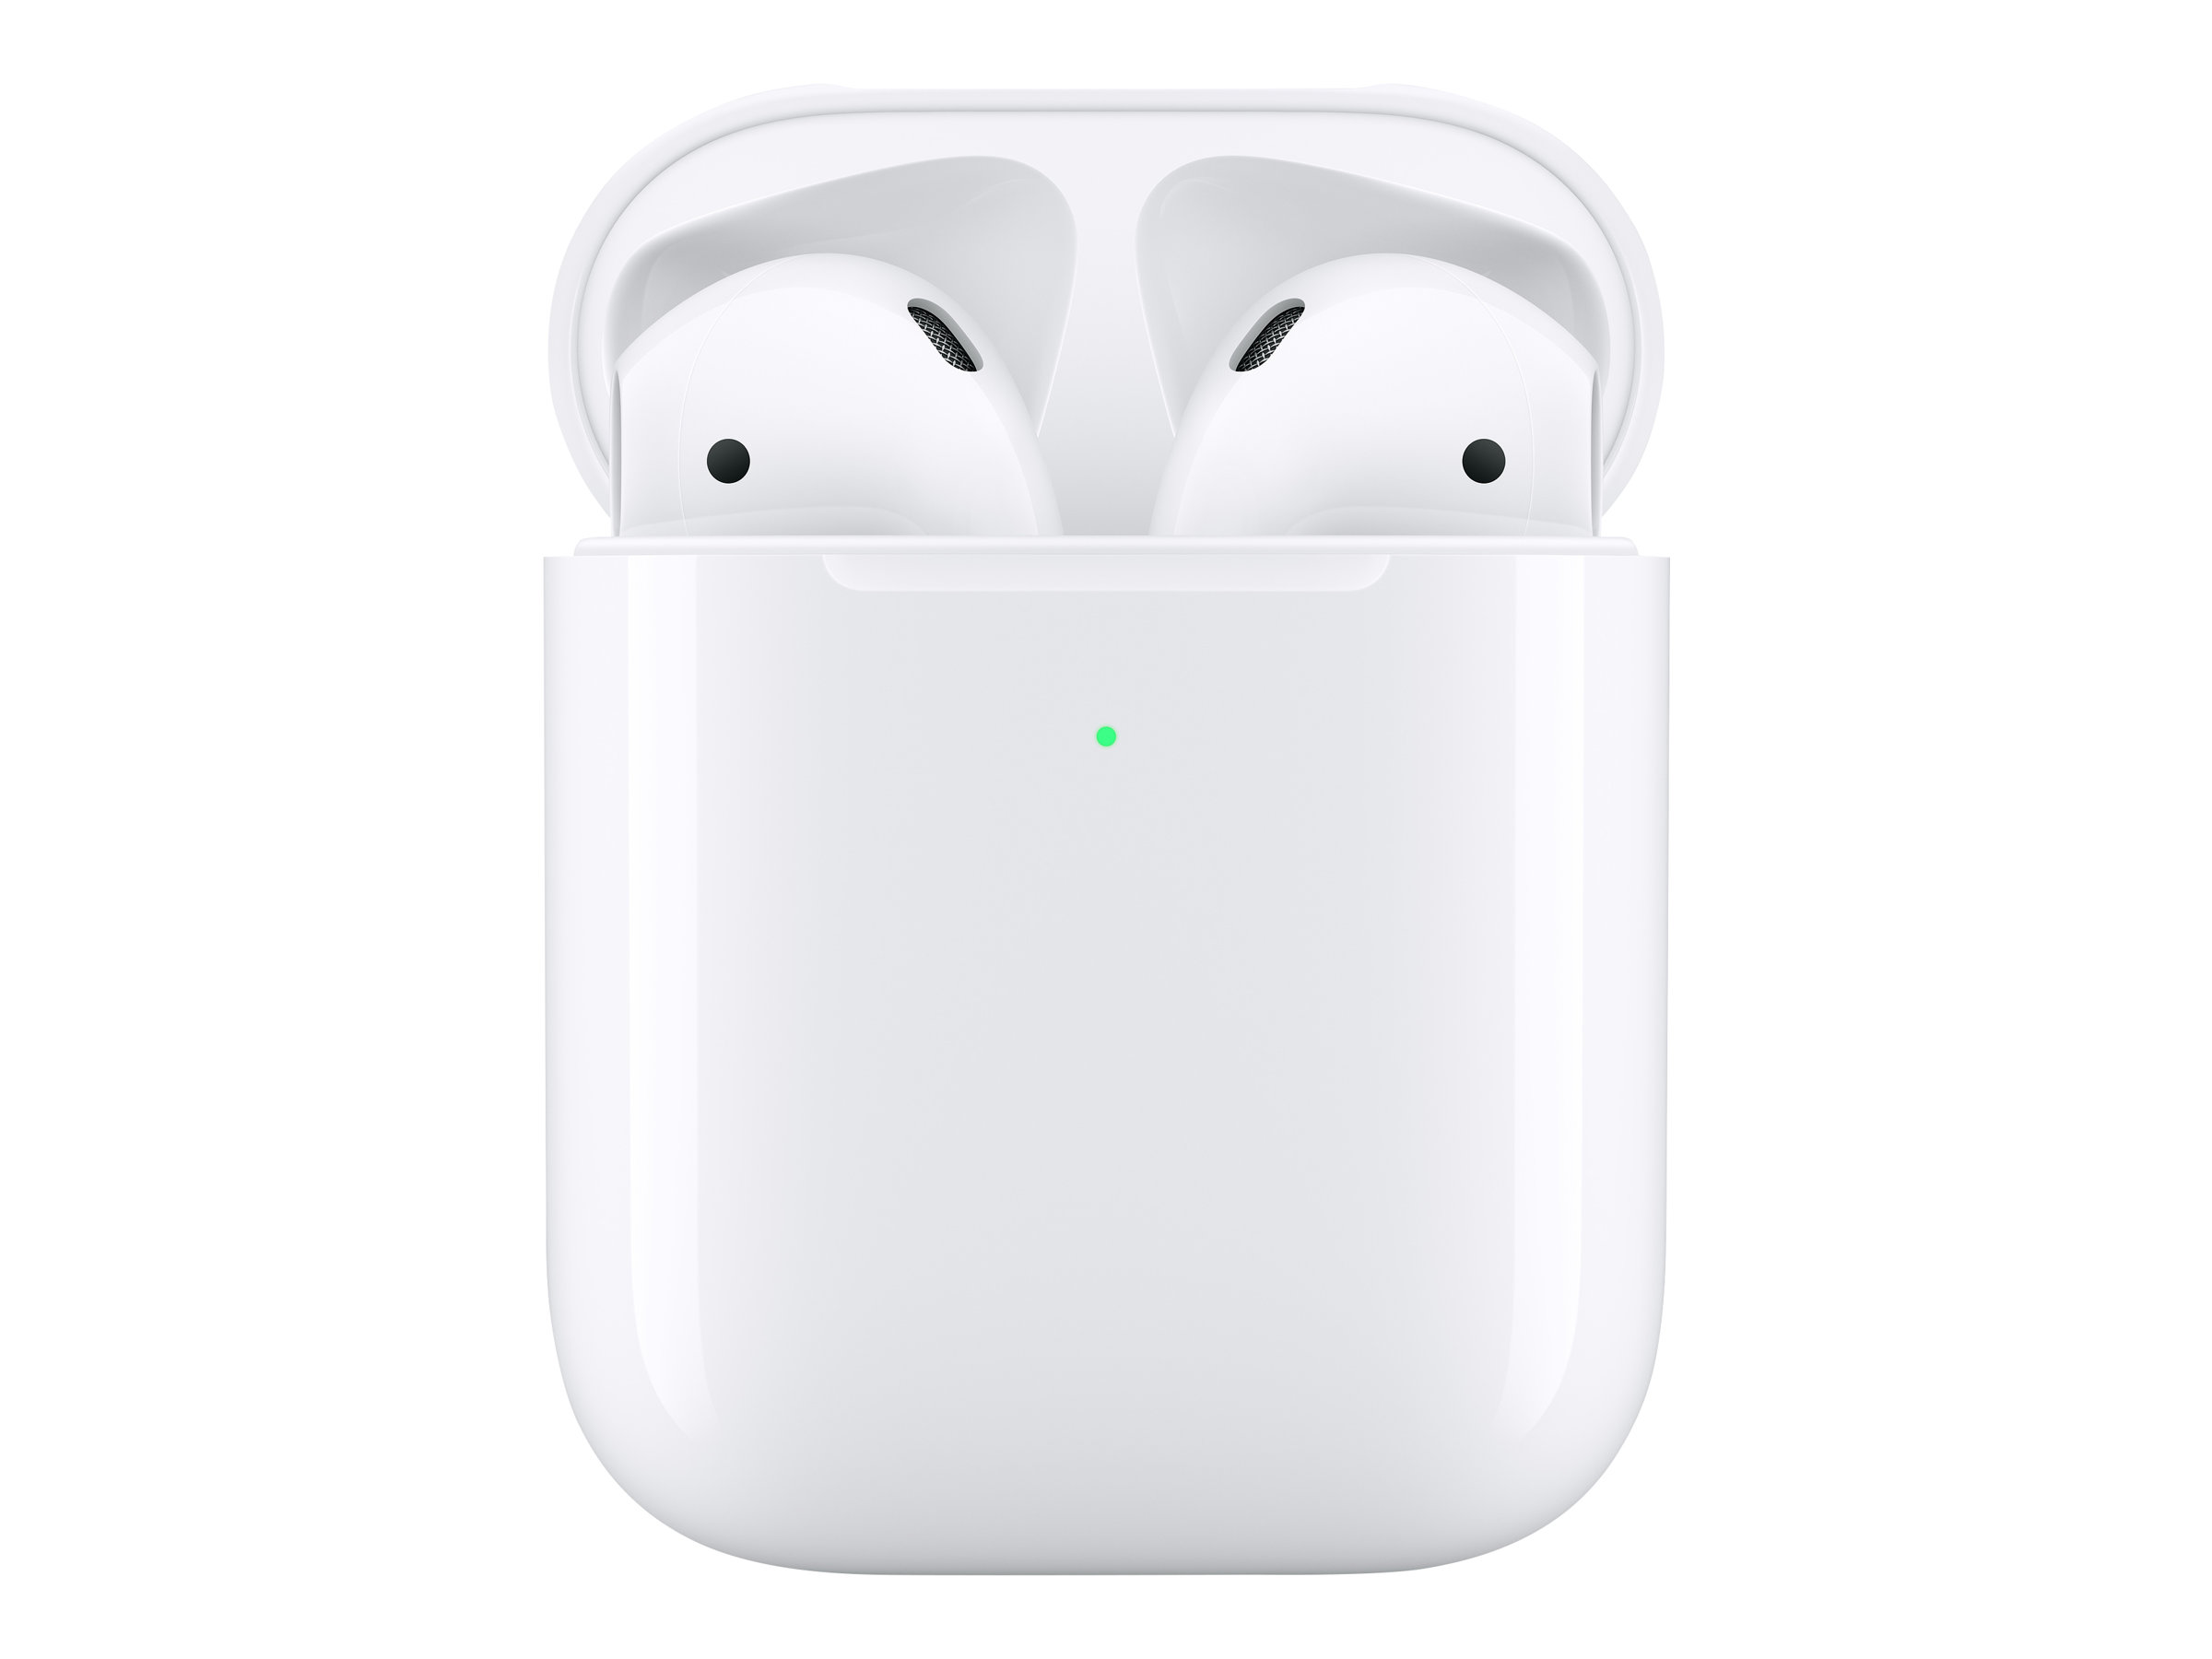 Apple AirPods with Wireless Charging Case - 2nd Generation - true wireless earphones with mic